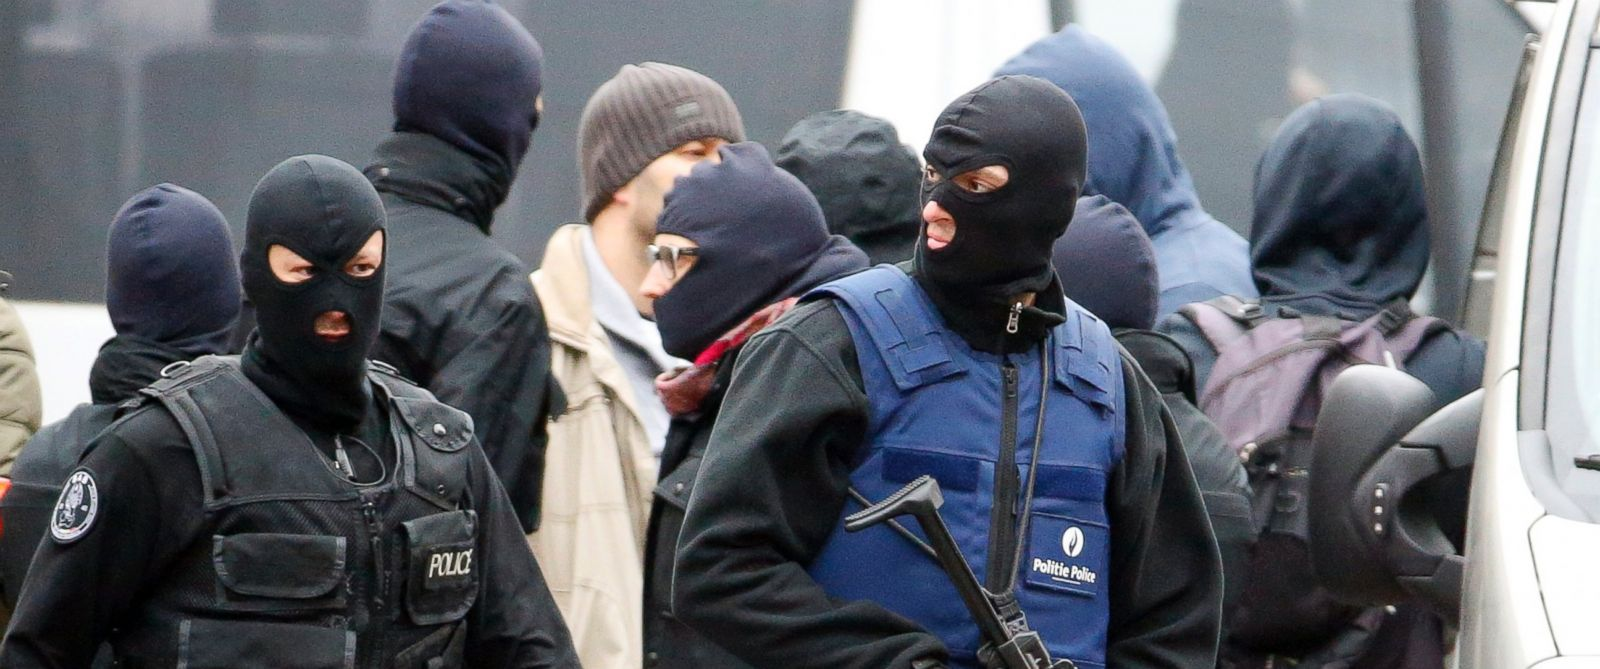 PHOTO: Belgian police are seen in Molenbeek, Belgium, Nov. 16. 2015.